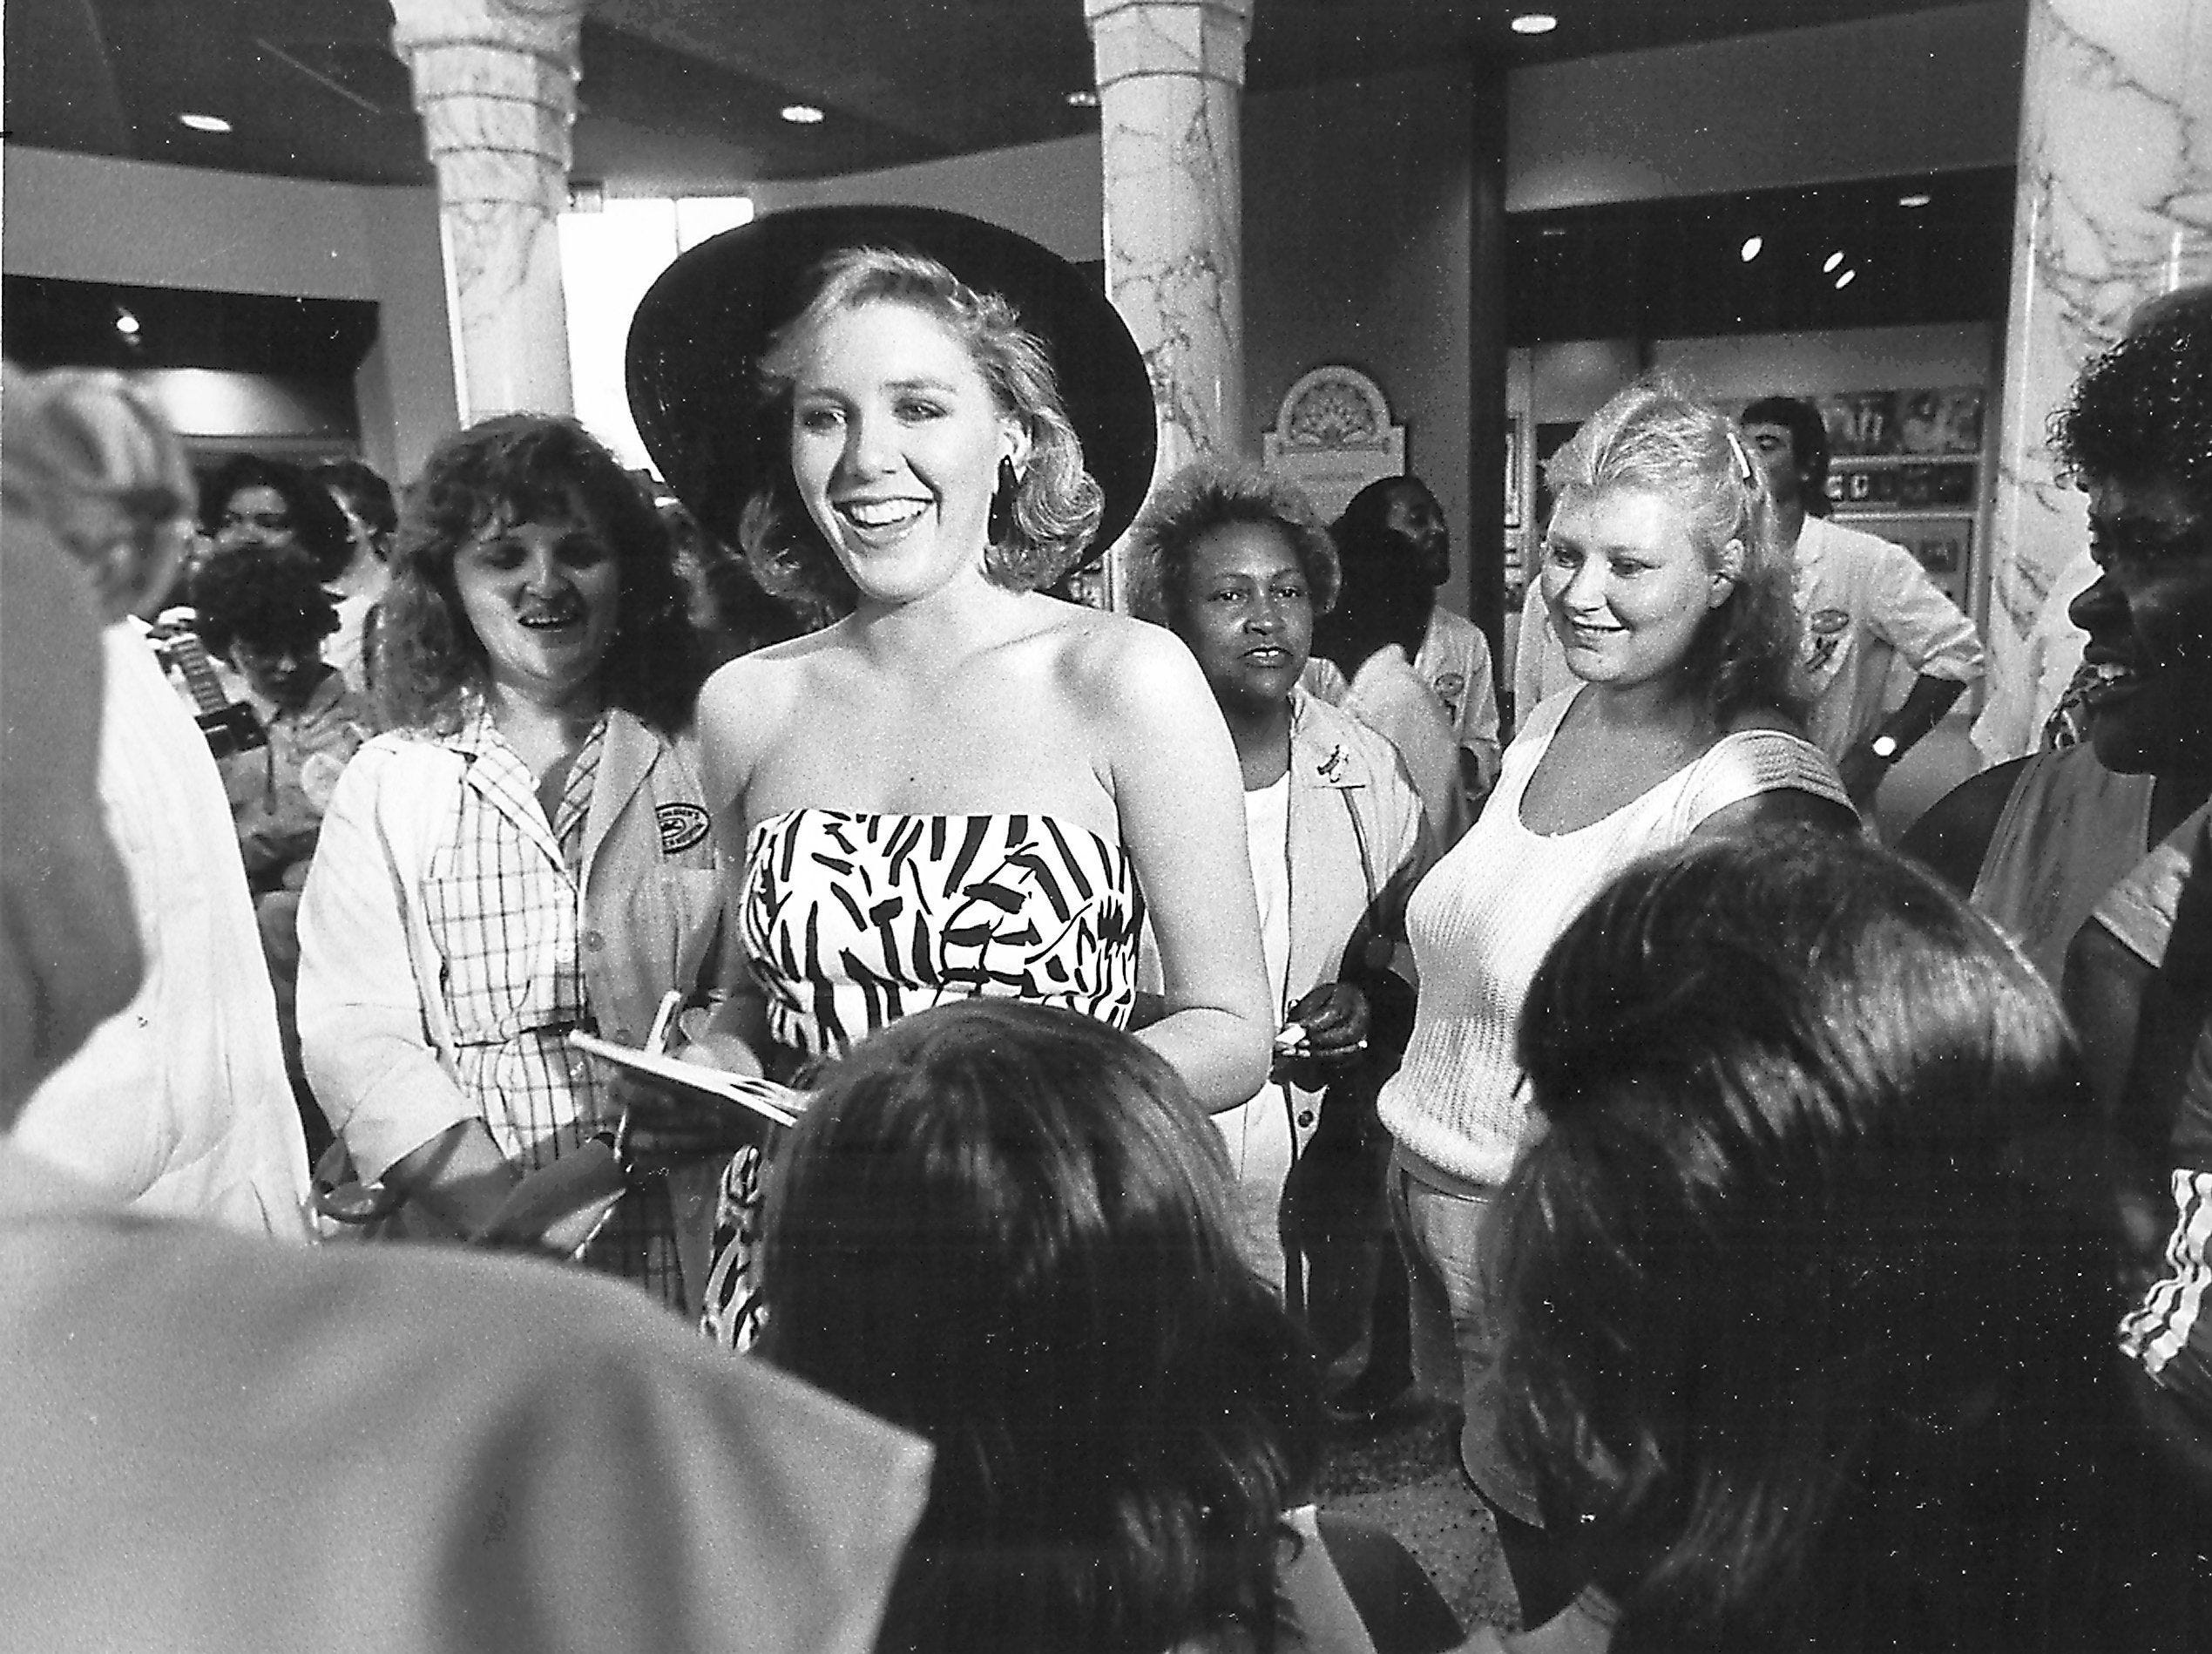 Miss America Kellye Cash signs autographs for staff and patients at St. Jude Children?s Research Hospital on 29 July 1987. She was visiting the hospital with founder Danny Thomas, Michael Jordan, Archie Manning and others in connection with the Federal Express St. Jude Classic Golf Tournament.